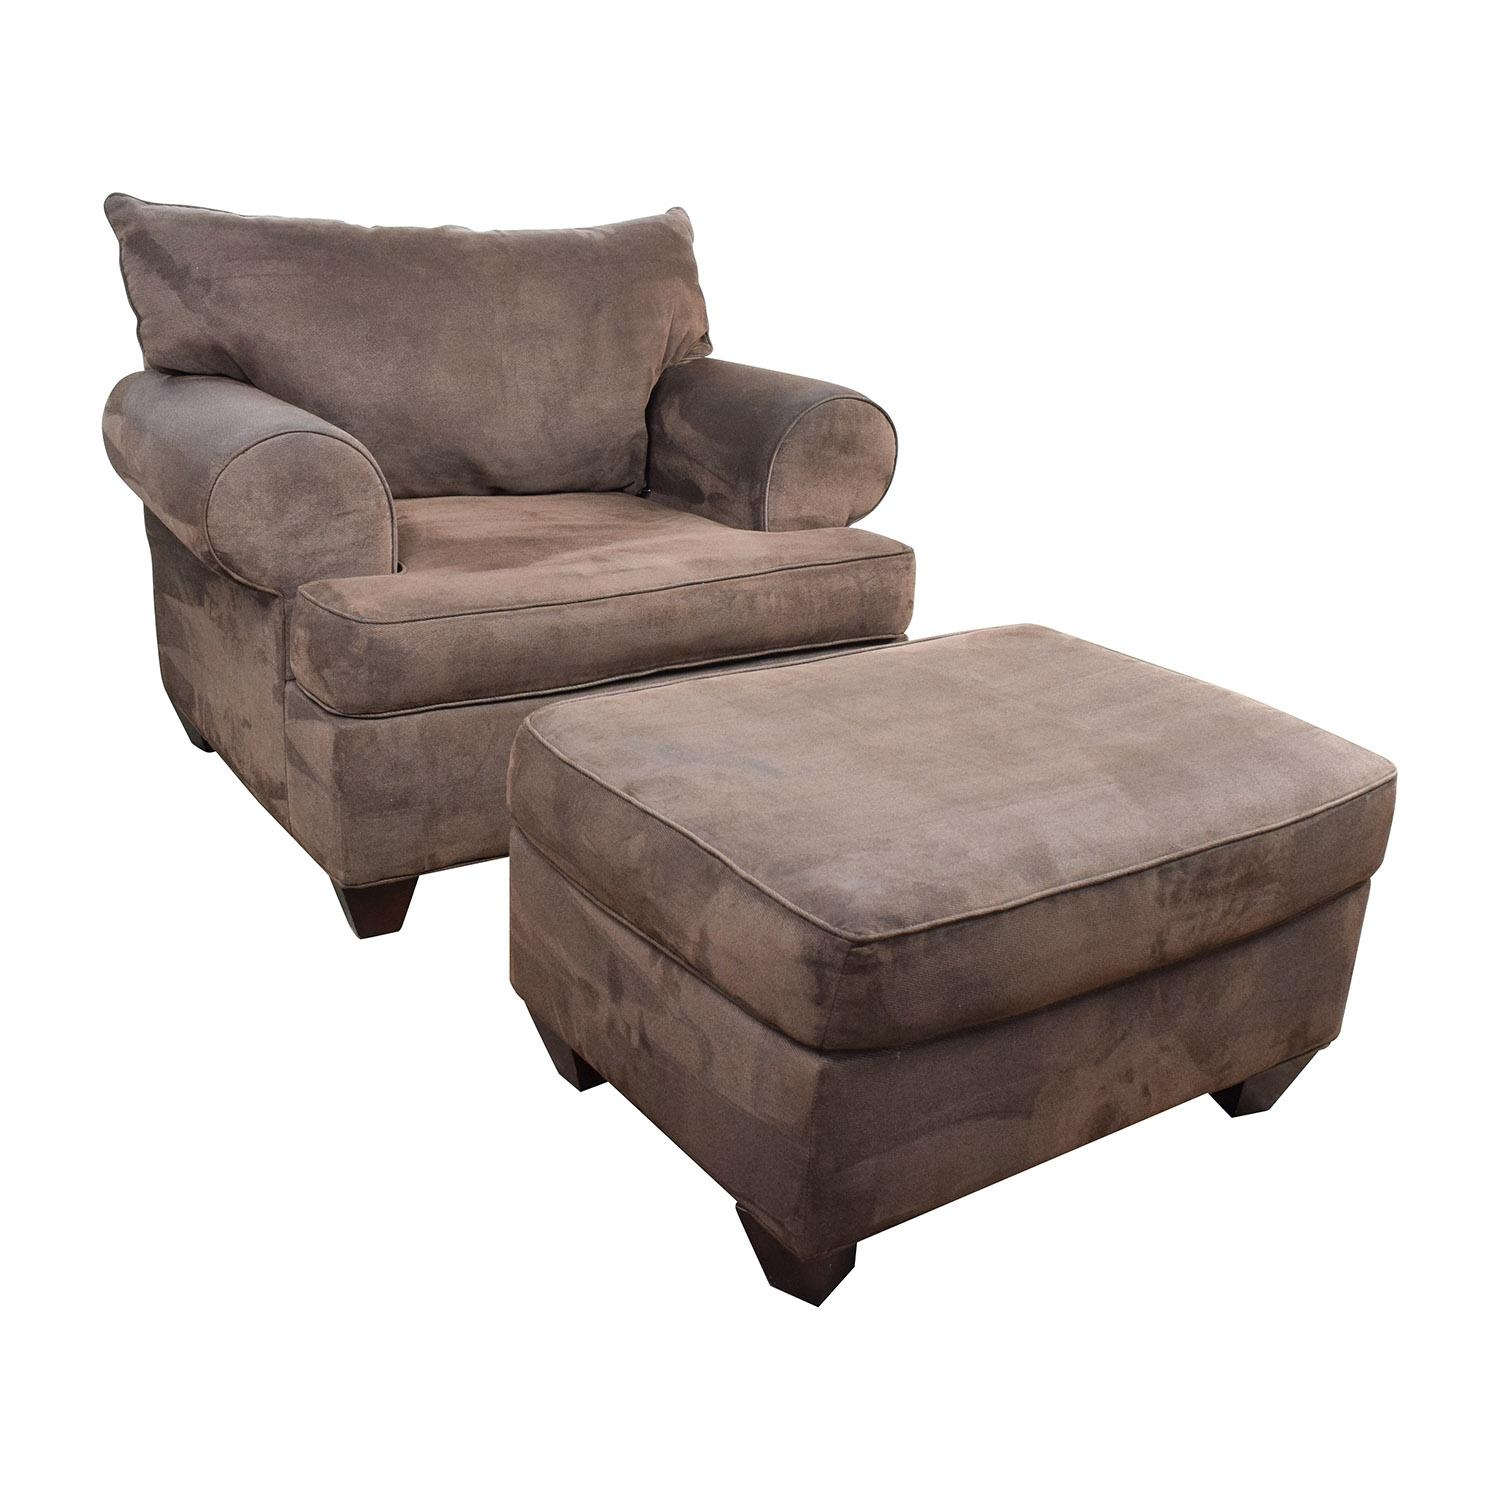 67% Off - Dark Brown Sofa Chair With Ottoman / Chairs intended for Sofa Chair And Ottoman